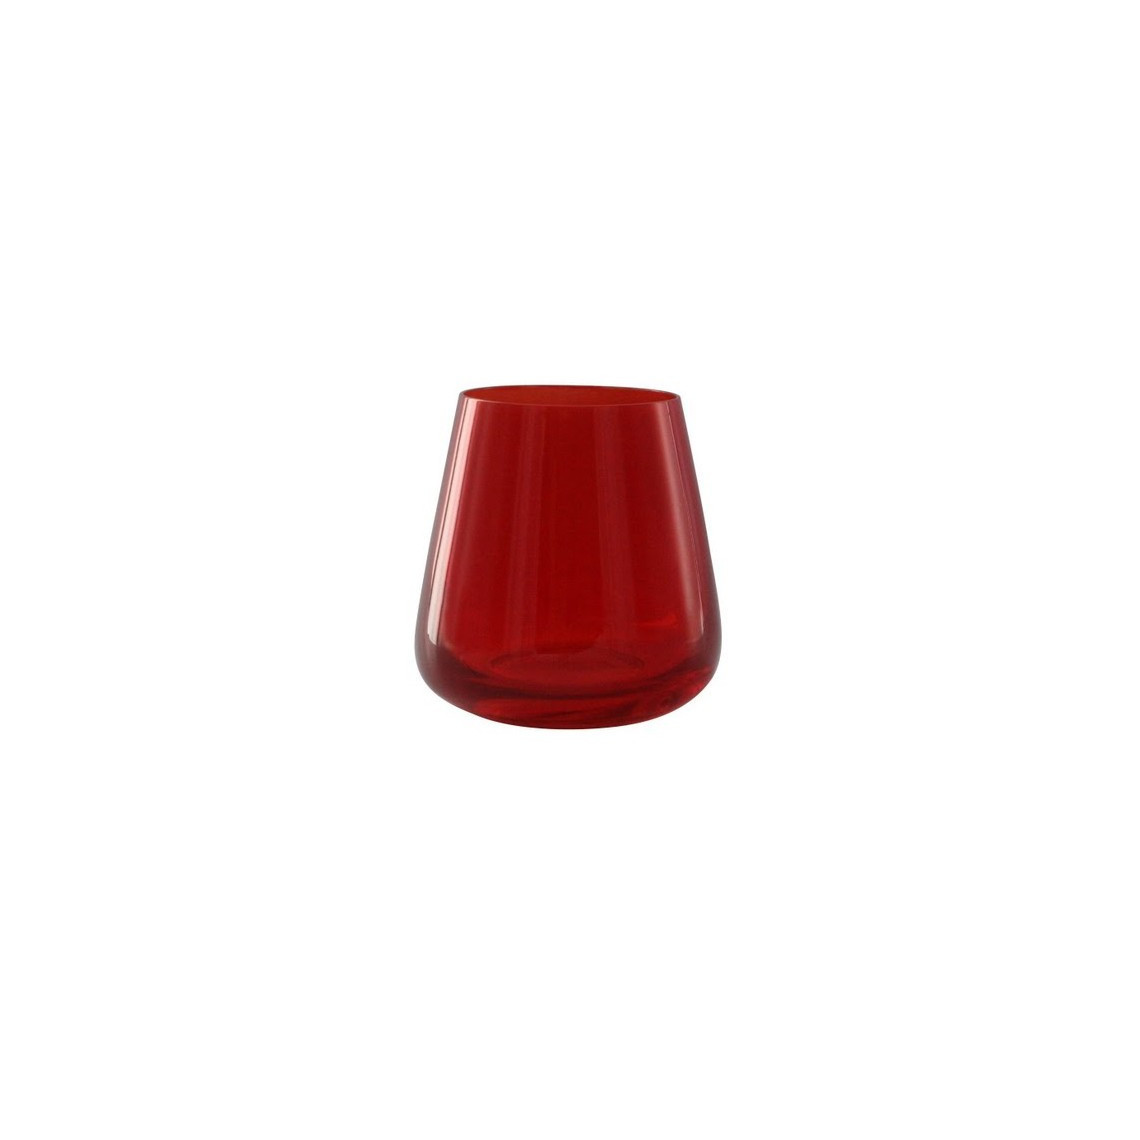 Gobelet Stendhal rouge (28 cl)